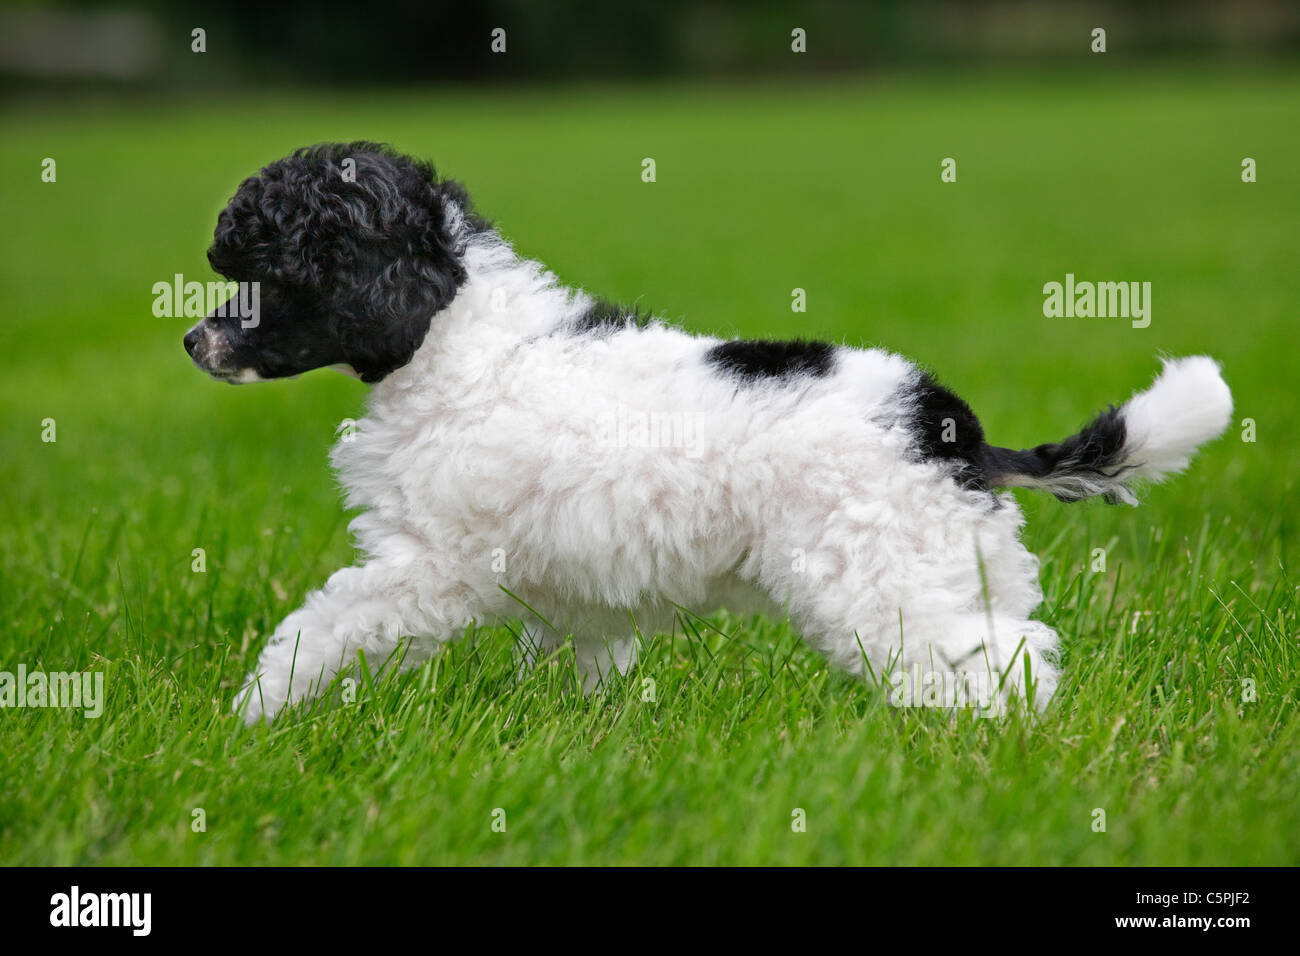 Black and white Miniature / Dwarf / Nain poodle (Canis lupus familiaris) in garden - Stock Image